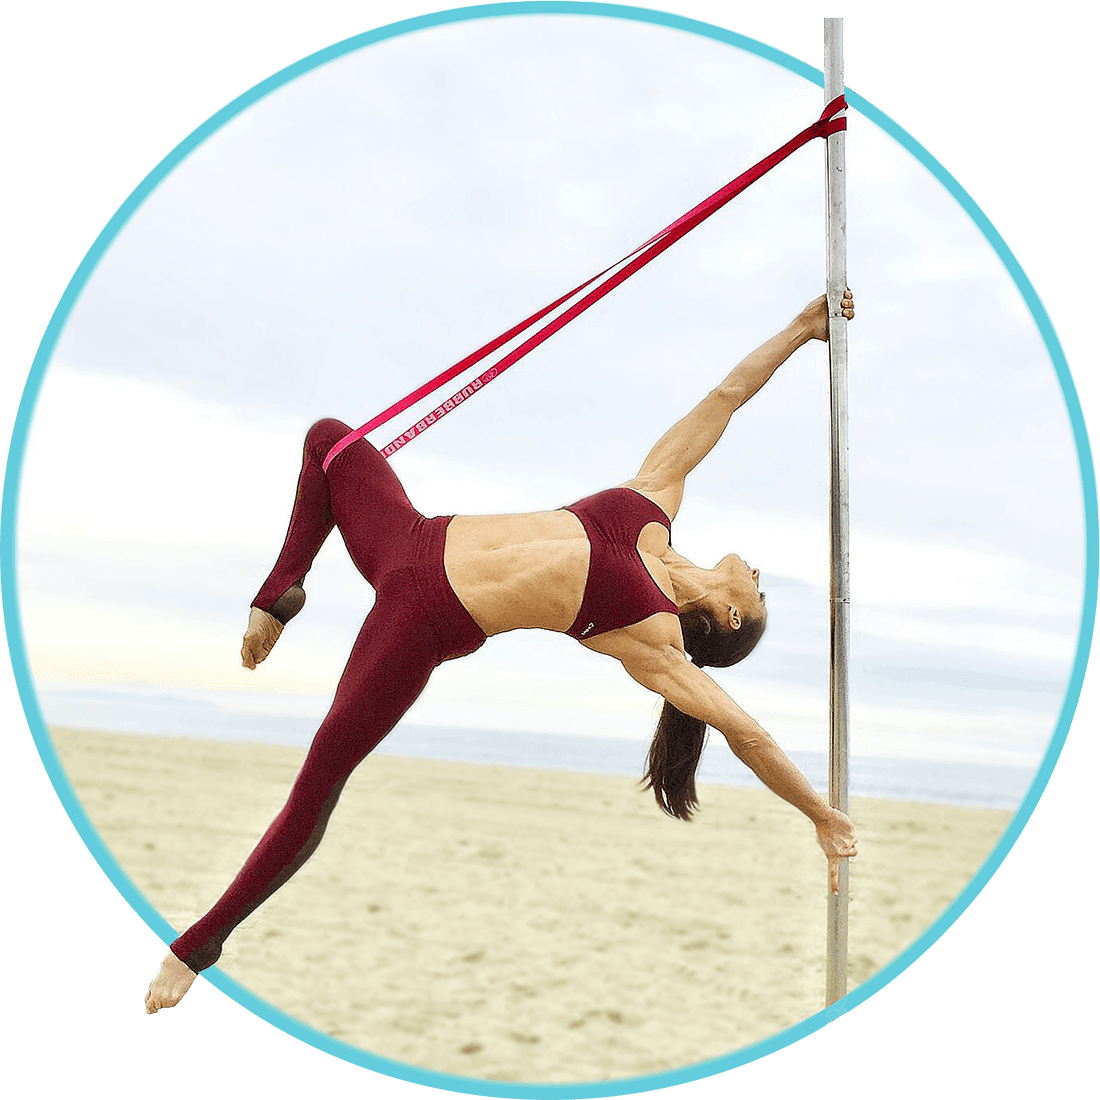 Handspring on the Pole with Resistance Bands